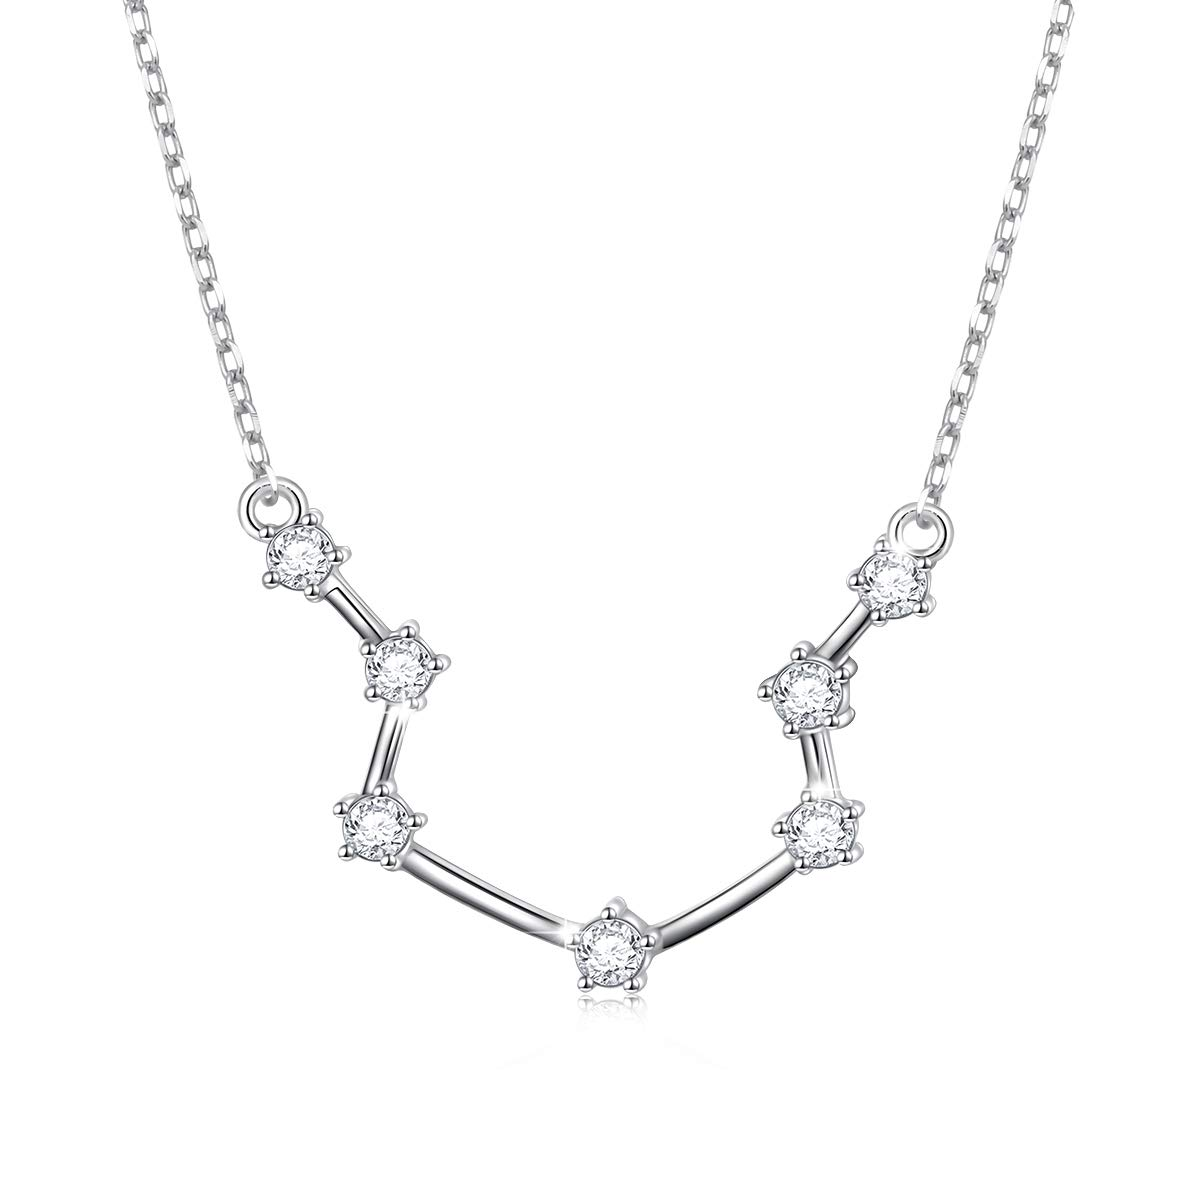 925 Sterling Silver CZ Astrology 12 Constellation Horoscope Sign Astrology  Zodiac Star Necklace Birthday Gifts for Women Girls,18-20 inch